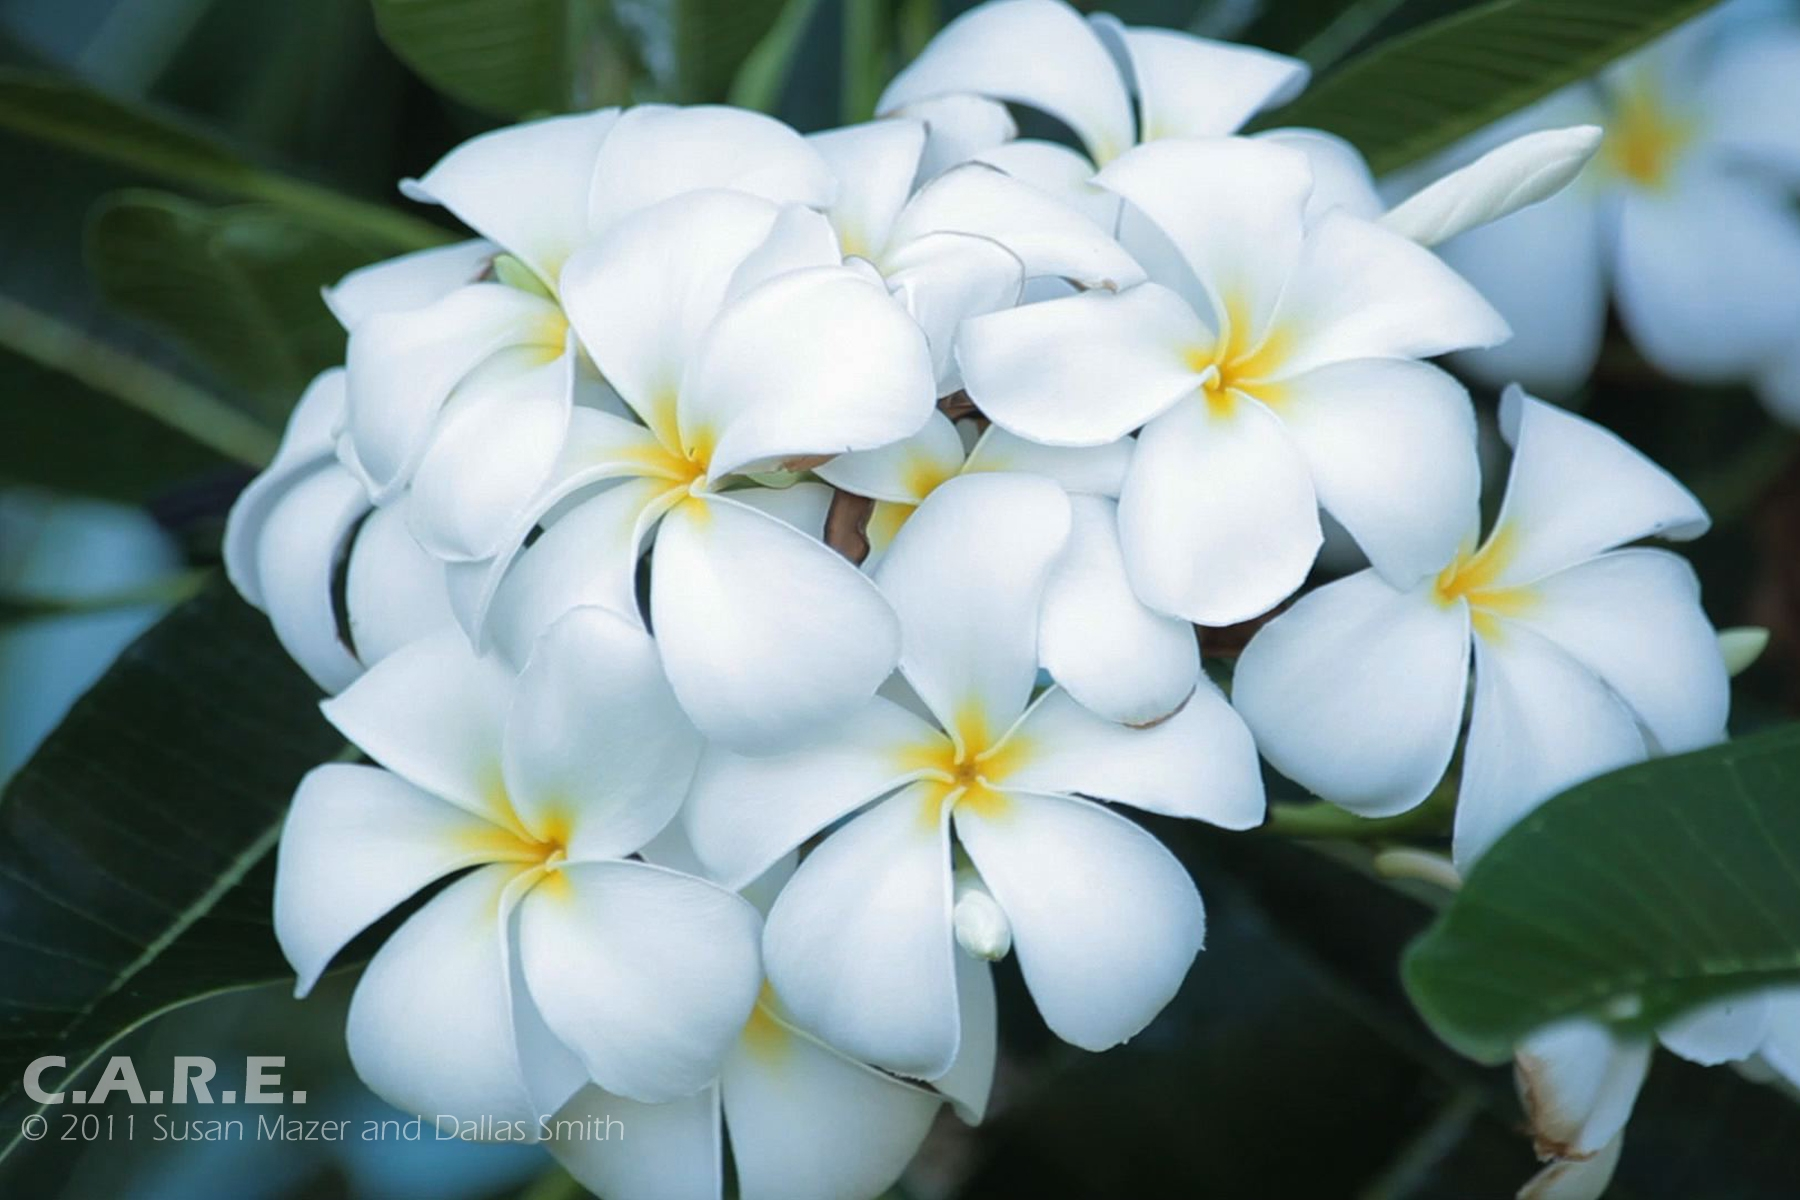 White yellow flowers 4 free hd wallpaper hdflowerwallpaper white yellow flowers background mightylinksfo